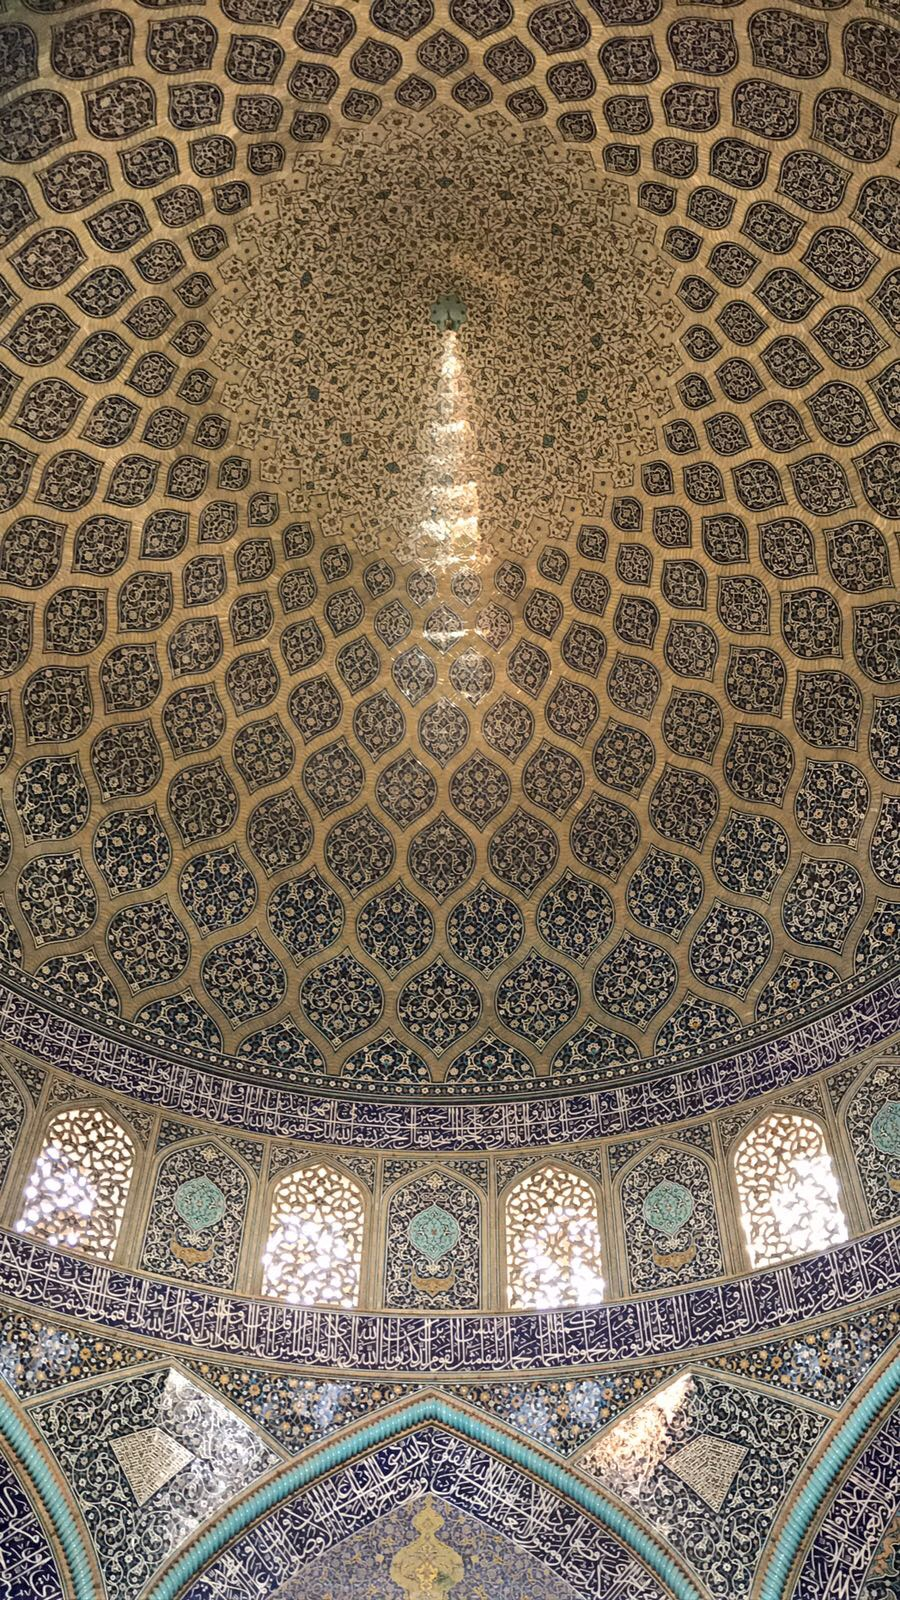 Interior of the dome of the Sheikh Lotfollah Mosque, Isfahan